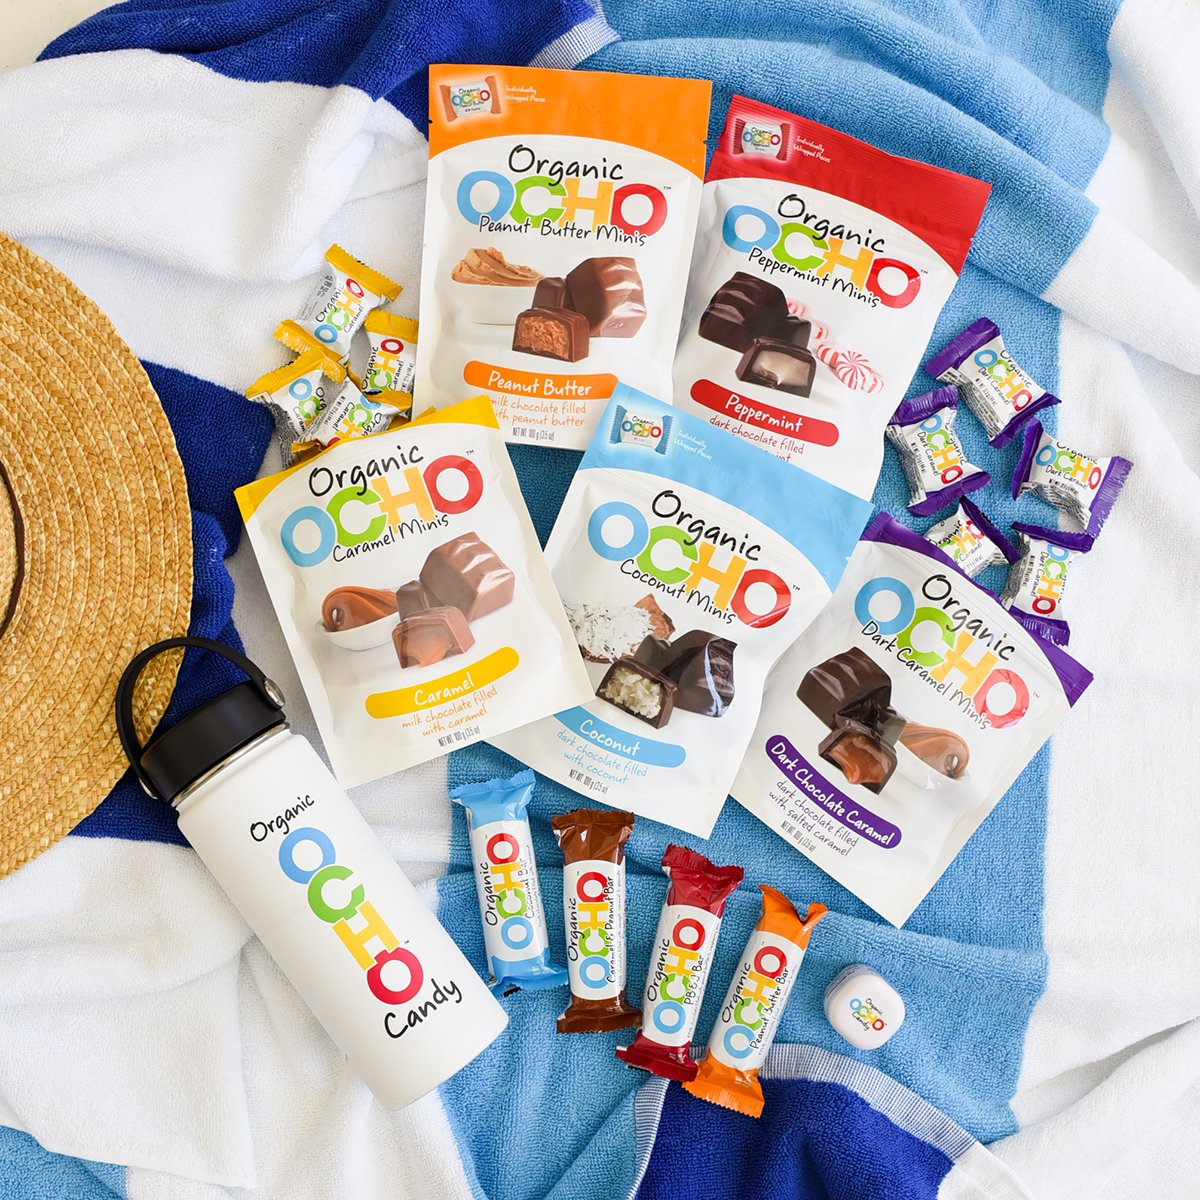 🌞 SUMMER #GIVEAWAY 🌞  To enter: retweet & comment your favorite #Summer activity! 1 winner announced 7/25/19 by noon PST to #win a free bar coupon & OCHO canvas bag. Must be 18+ years & live in the US.